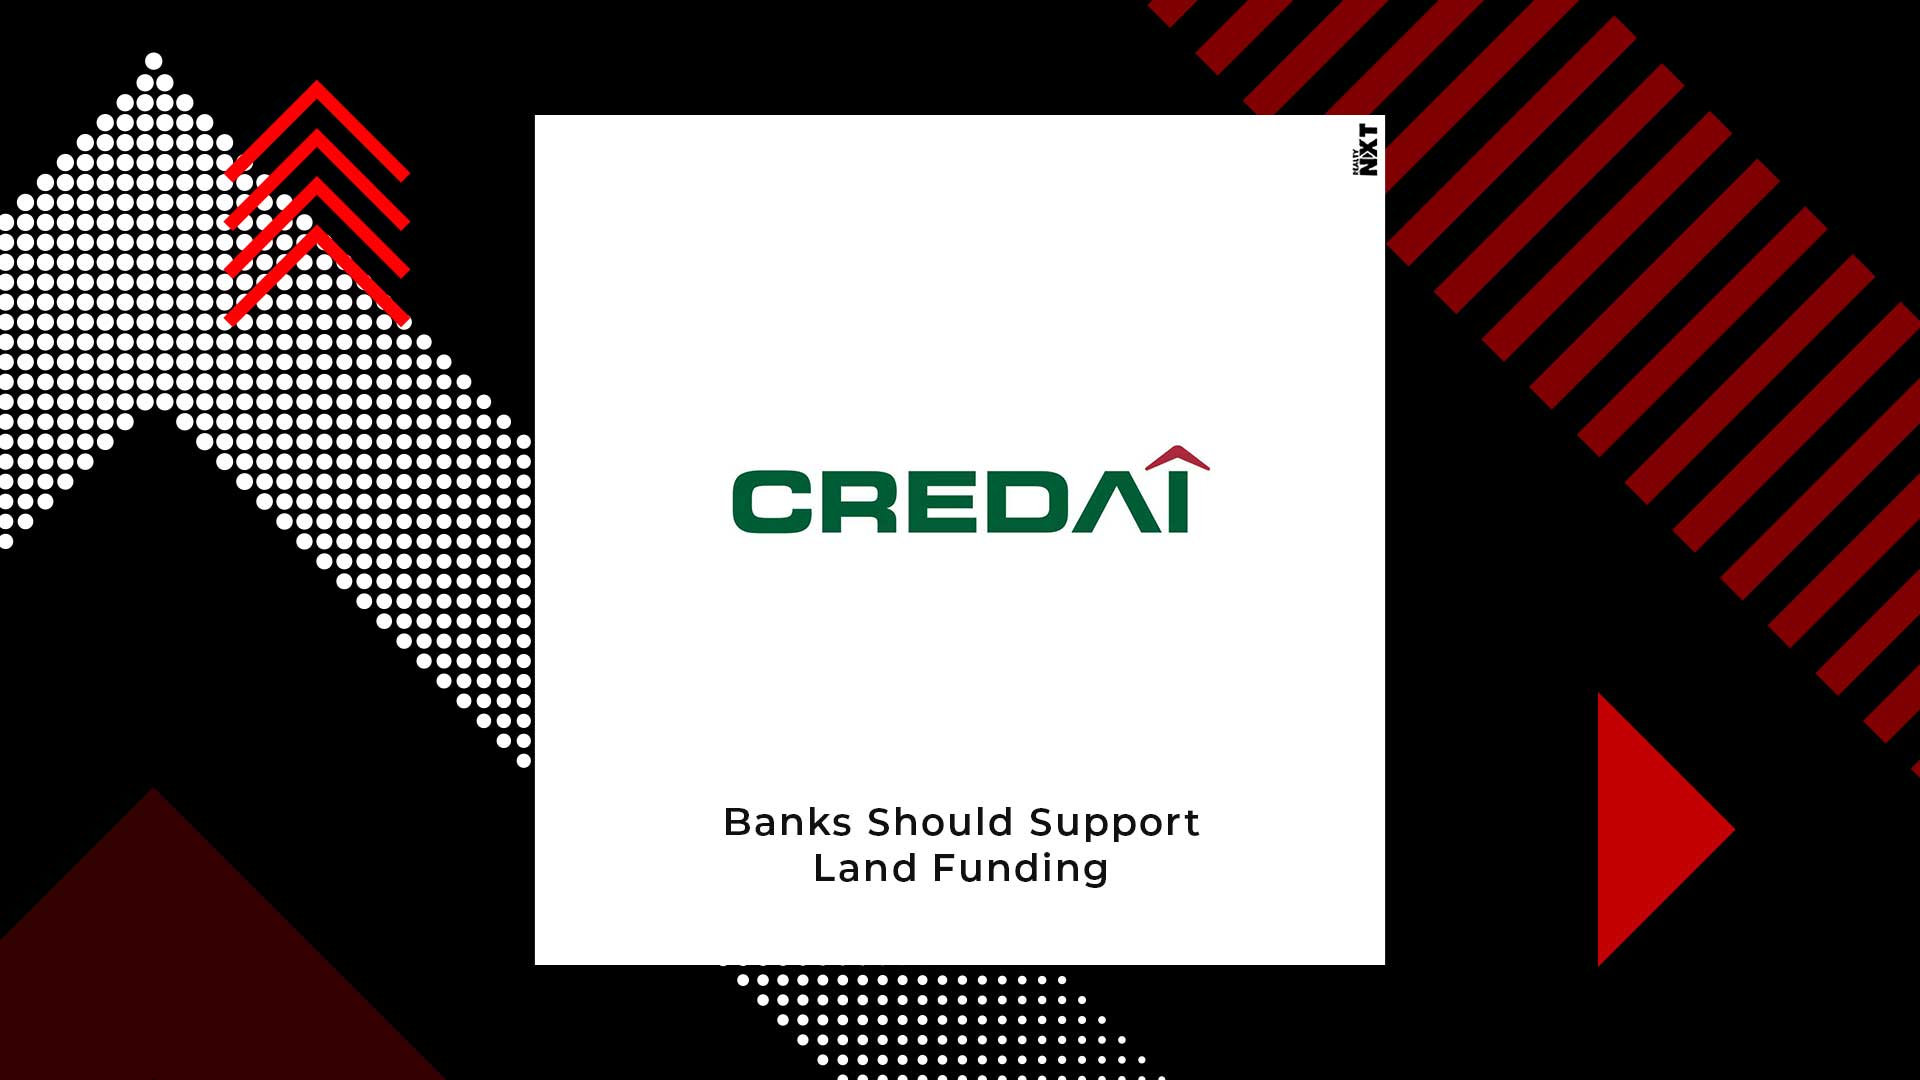 CREDAI Wants Banks To Fund Developers For Buying Land